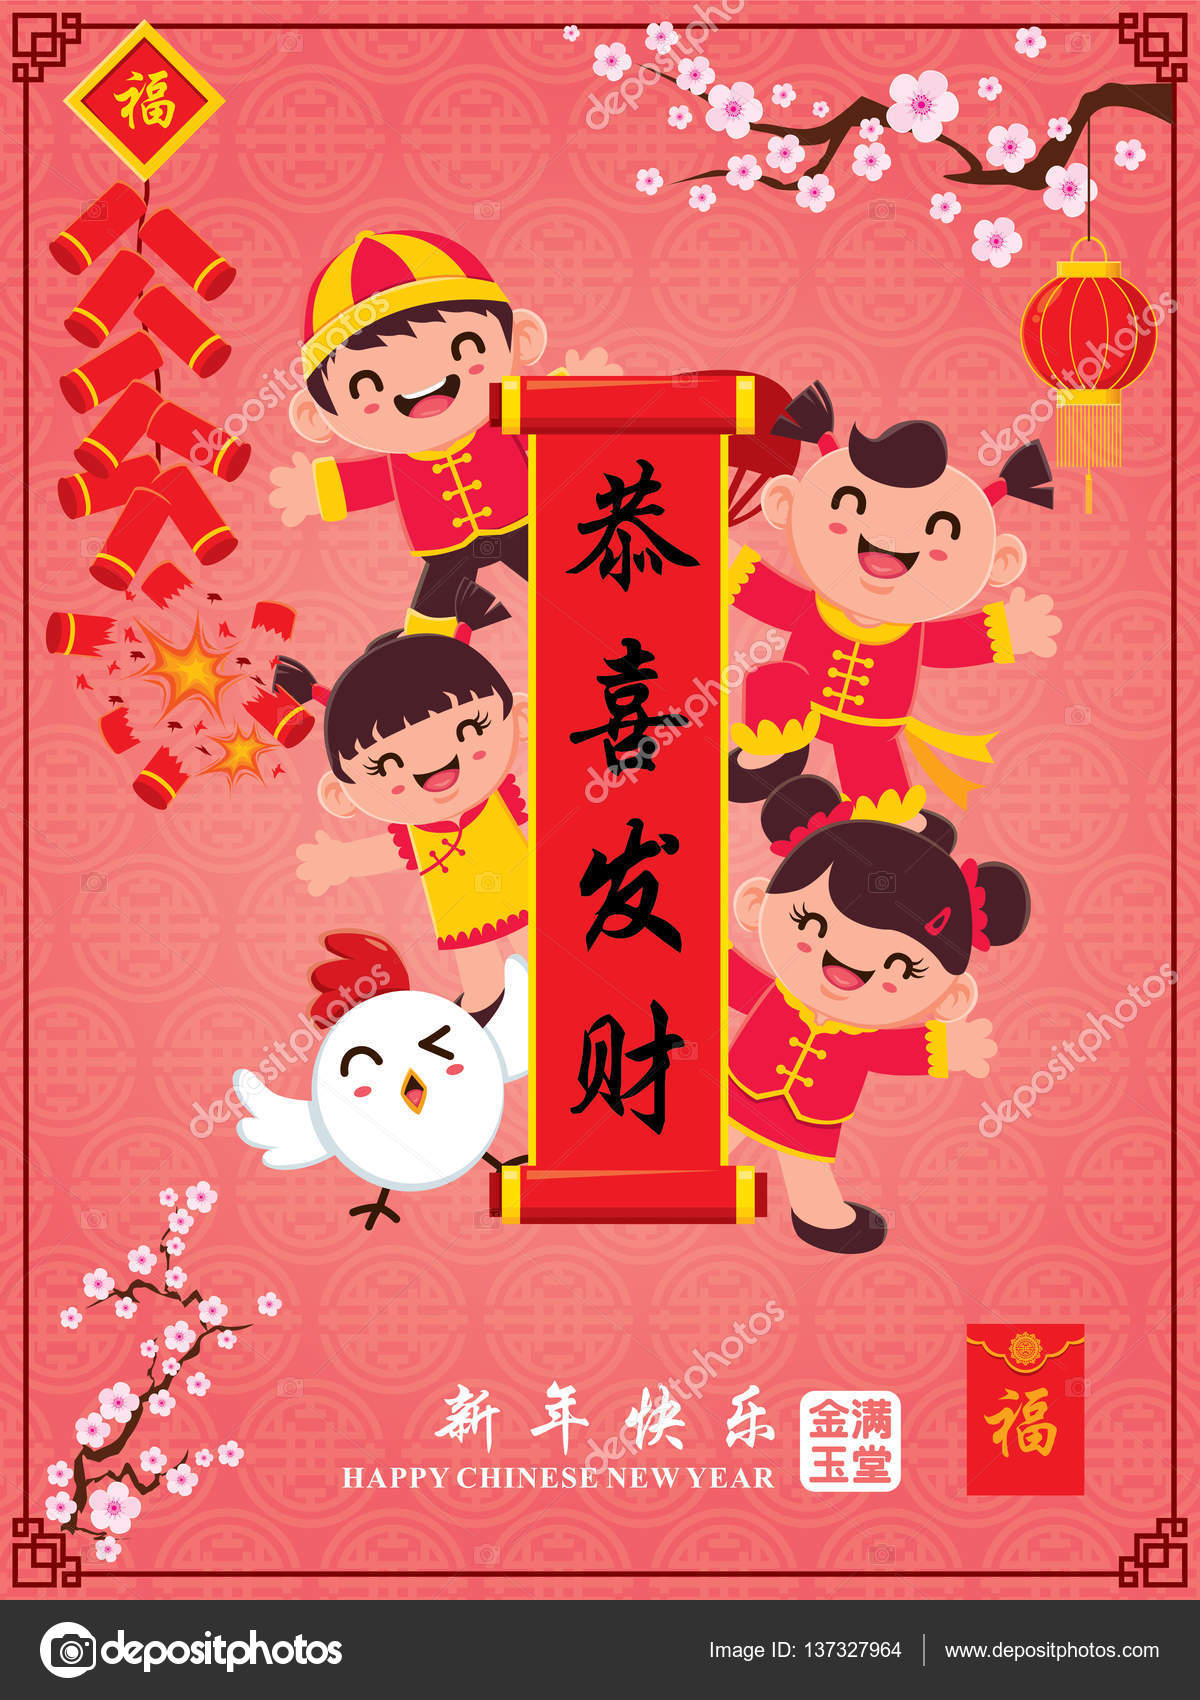 vintage chinese new year poster design with children chicken character chinese character gong xi fa cai means wishing you prosperity and wealth